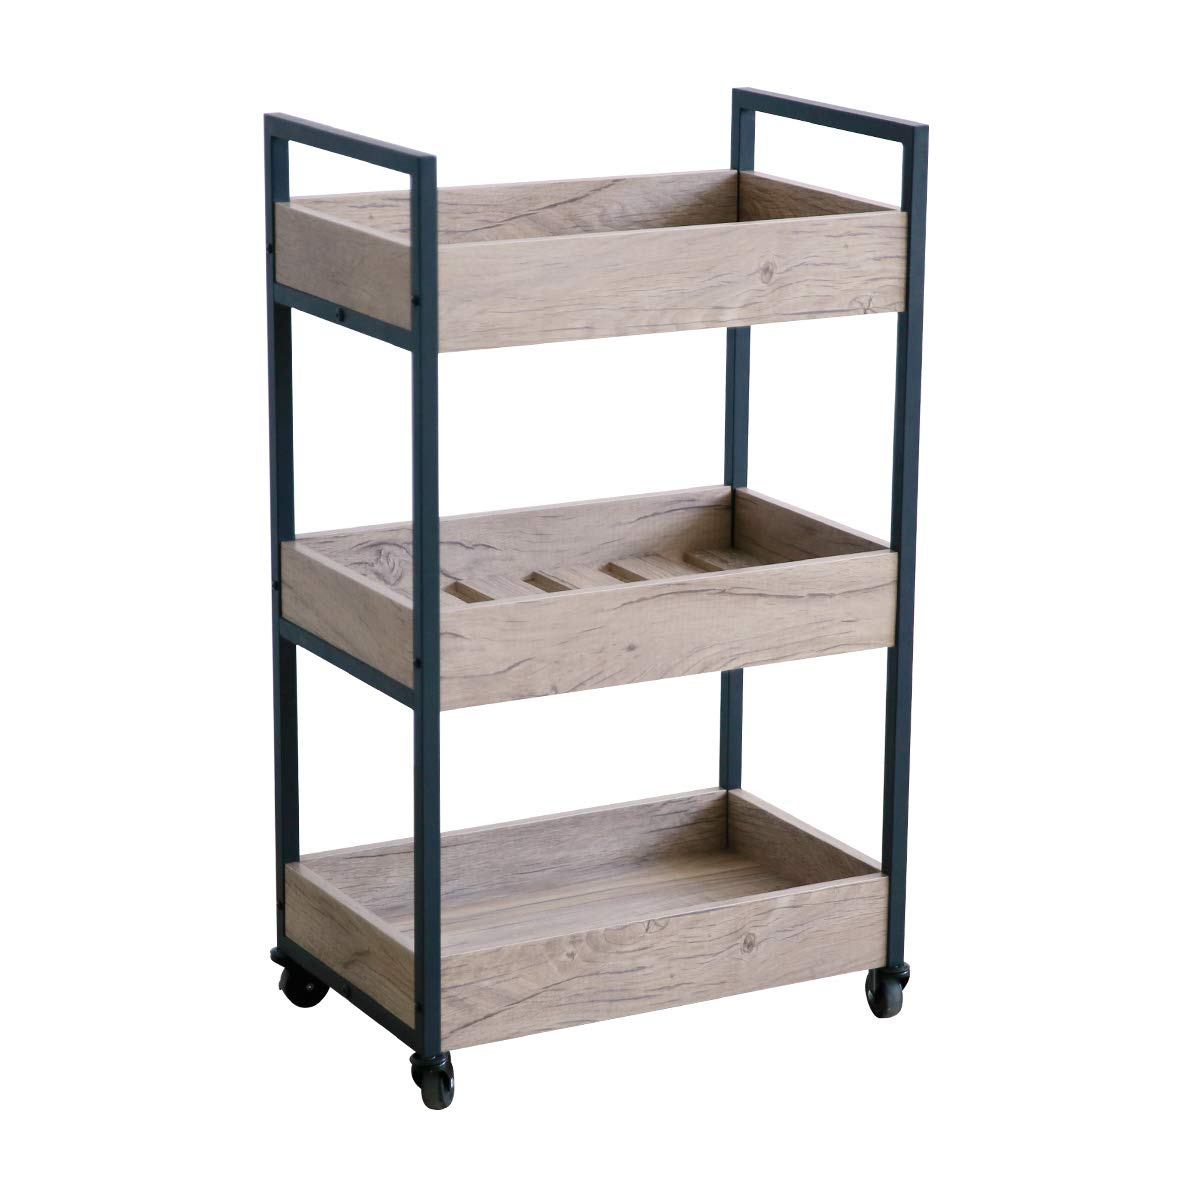 Roomfitters 3 Tier Rolling Utility Storage Cart, Kitchen Serving Bar Cart, Multipurpose Bathroom Nursery, Oak by Roomfitters